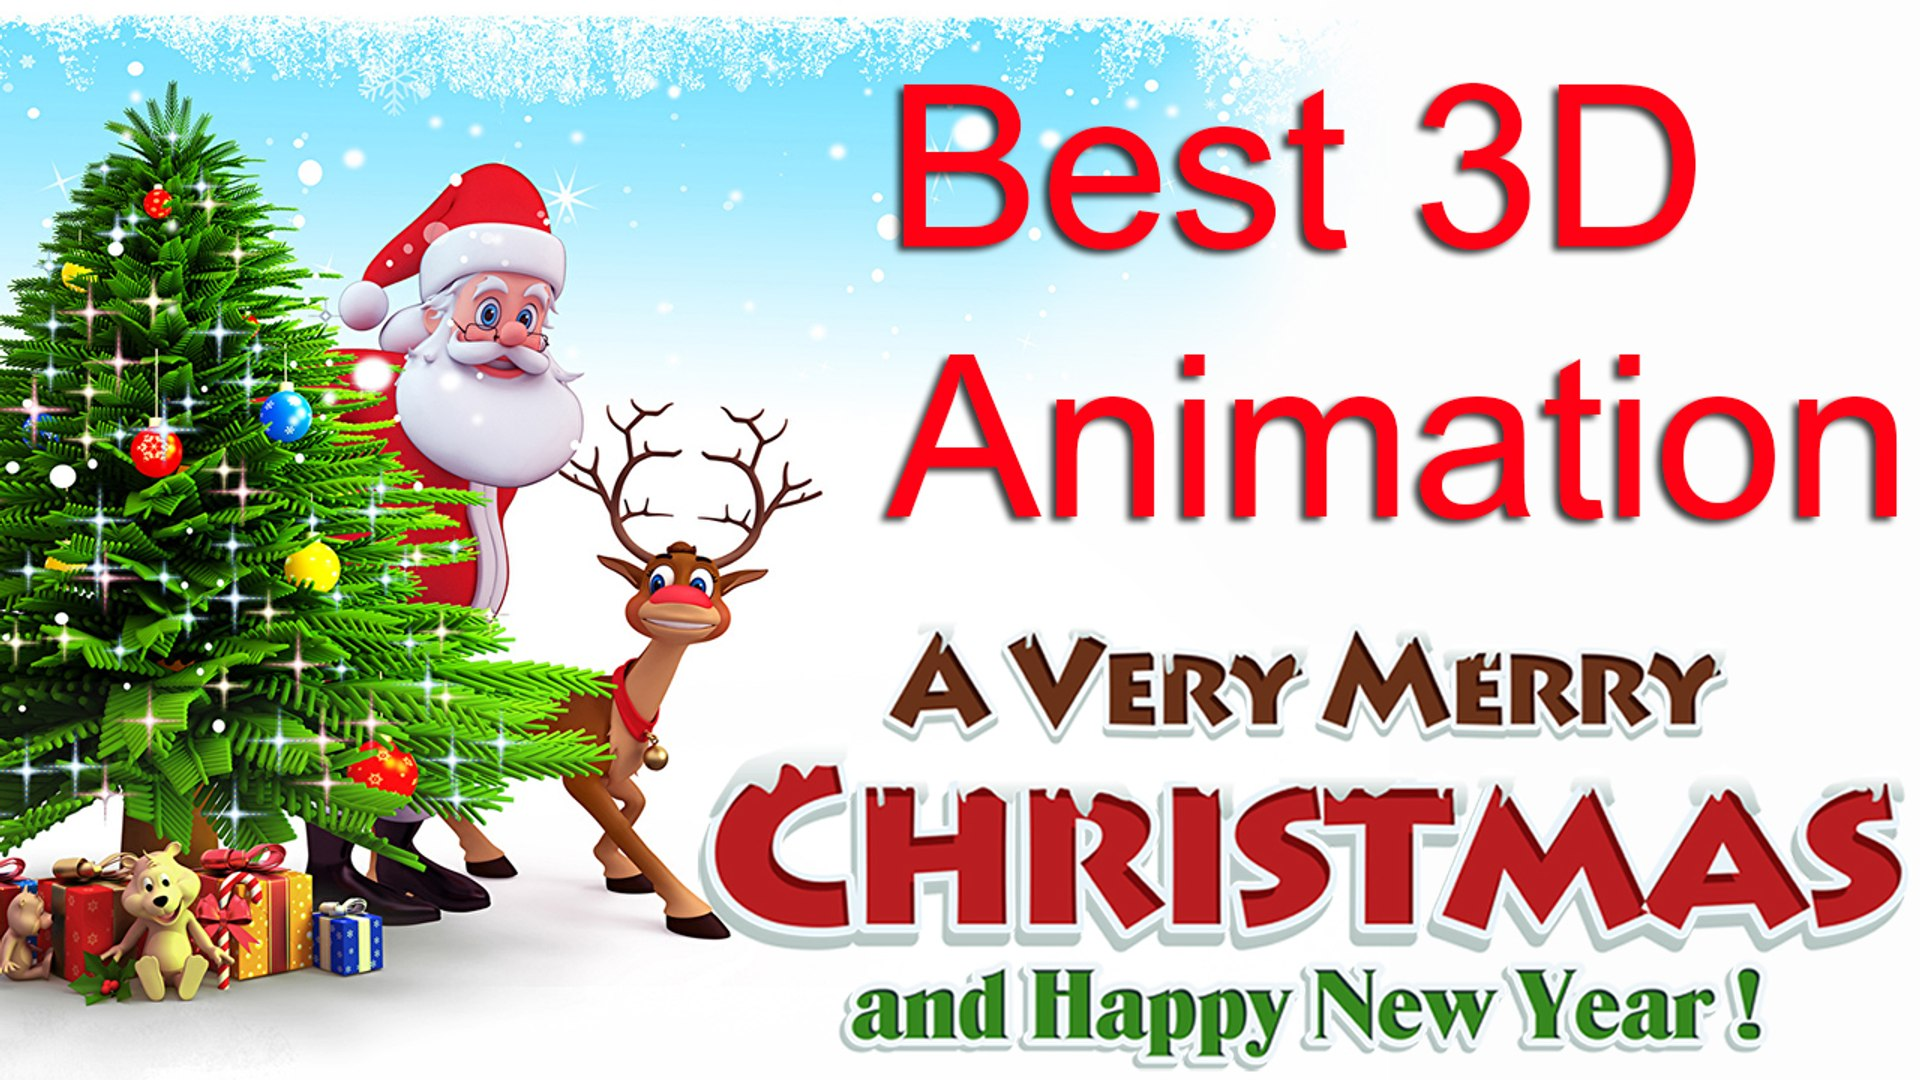 merry christmas song 3d animated santa claus video dailymotion merry christmas song 3d animated santa claus